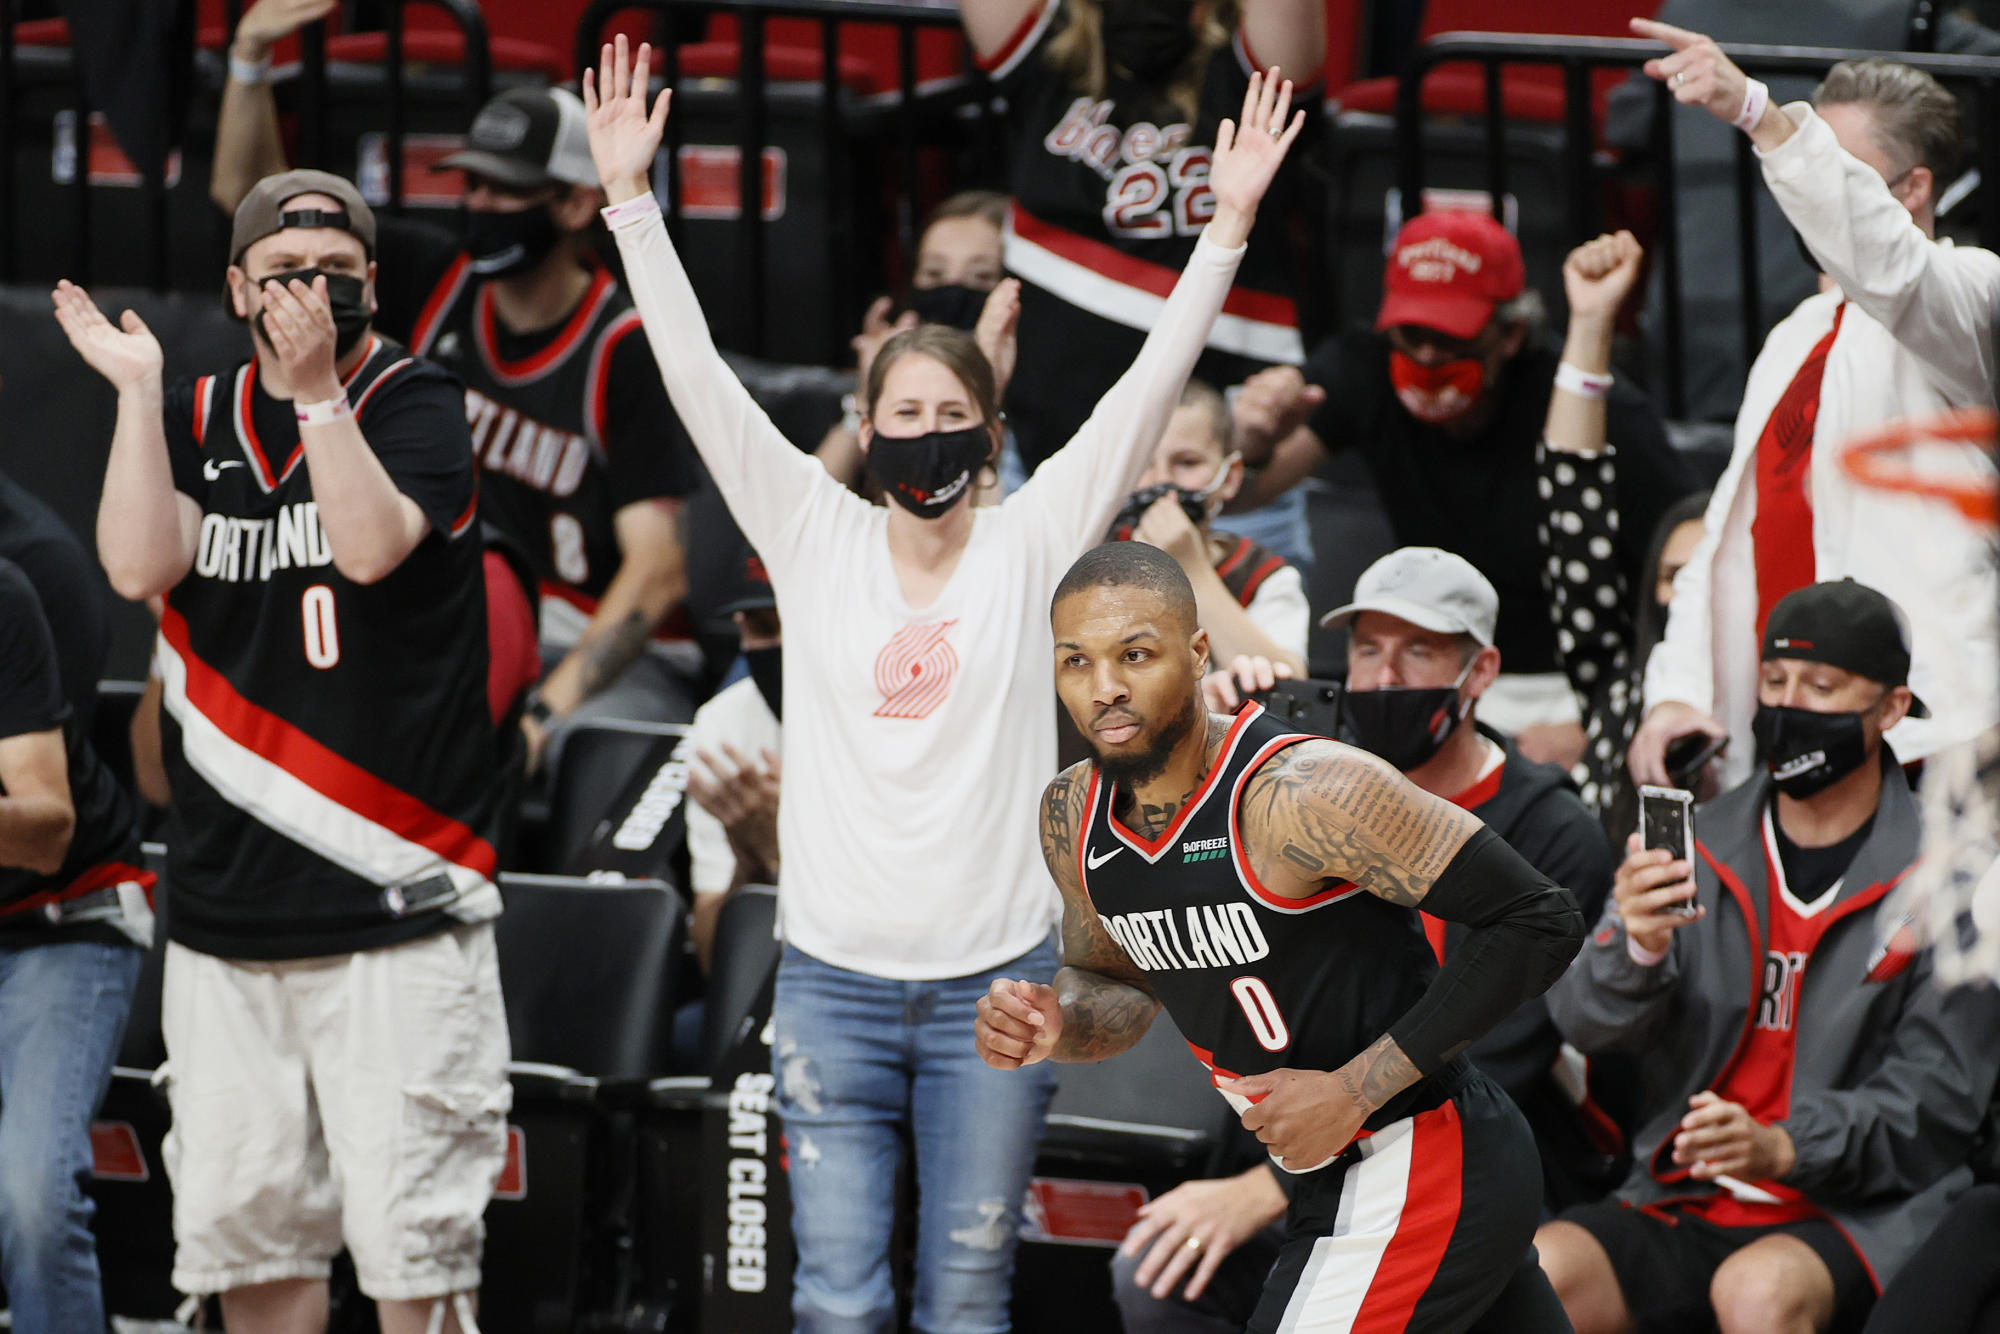 NBA playoff tracker: Portland rolls over Nuggets in 20-point win to even series 2-2 – Yahoo Sports